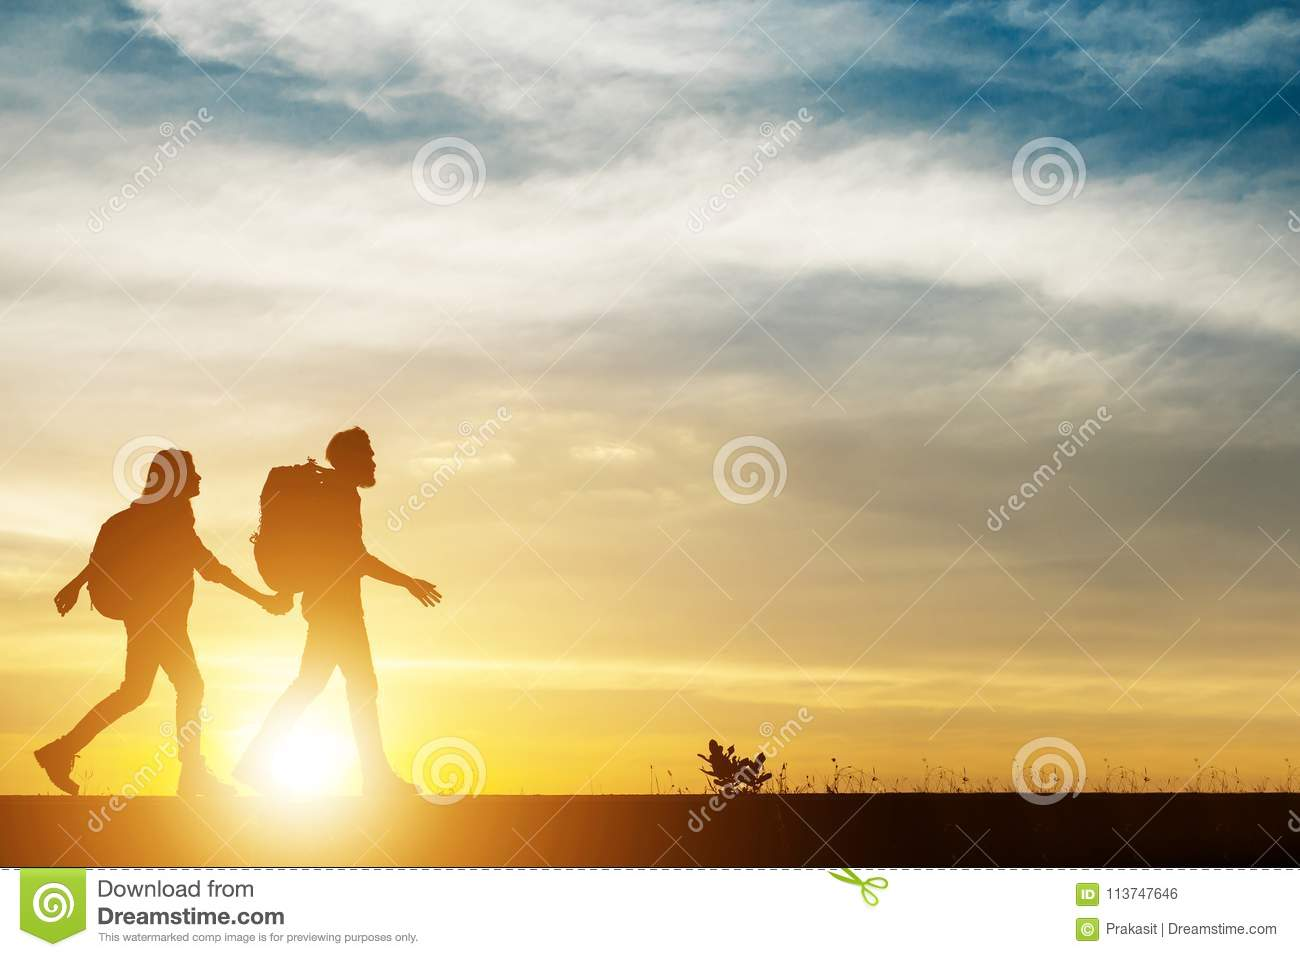 Couple hiking help teamwork and trust silhouette walking during